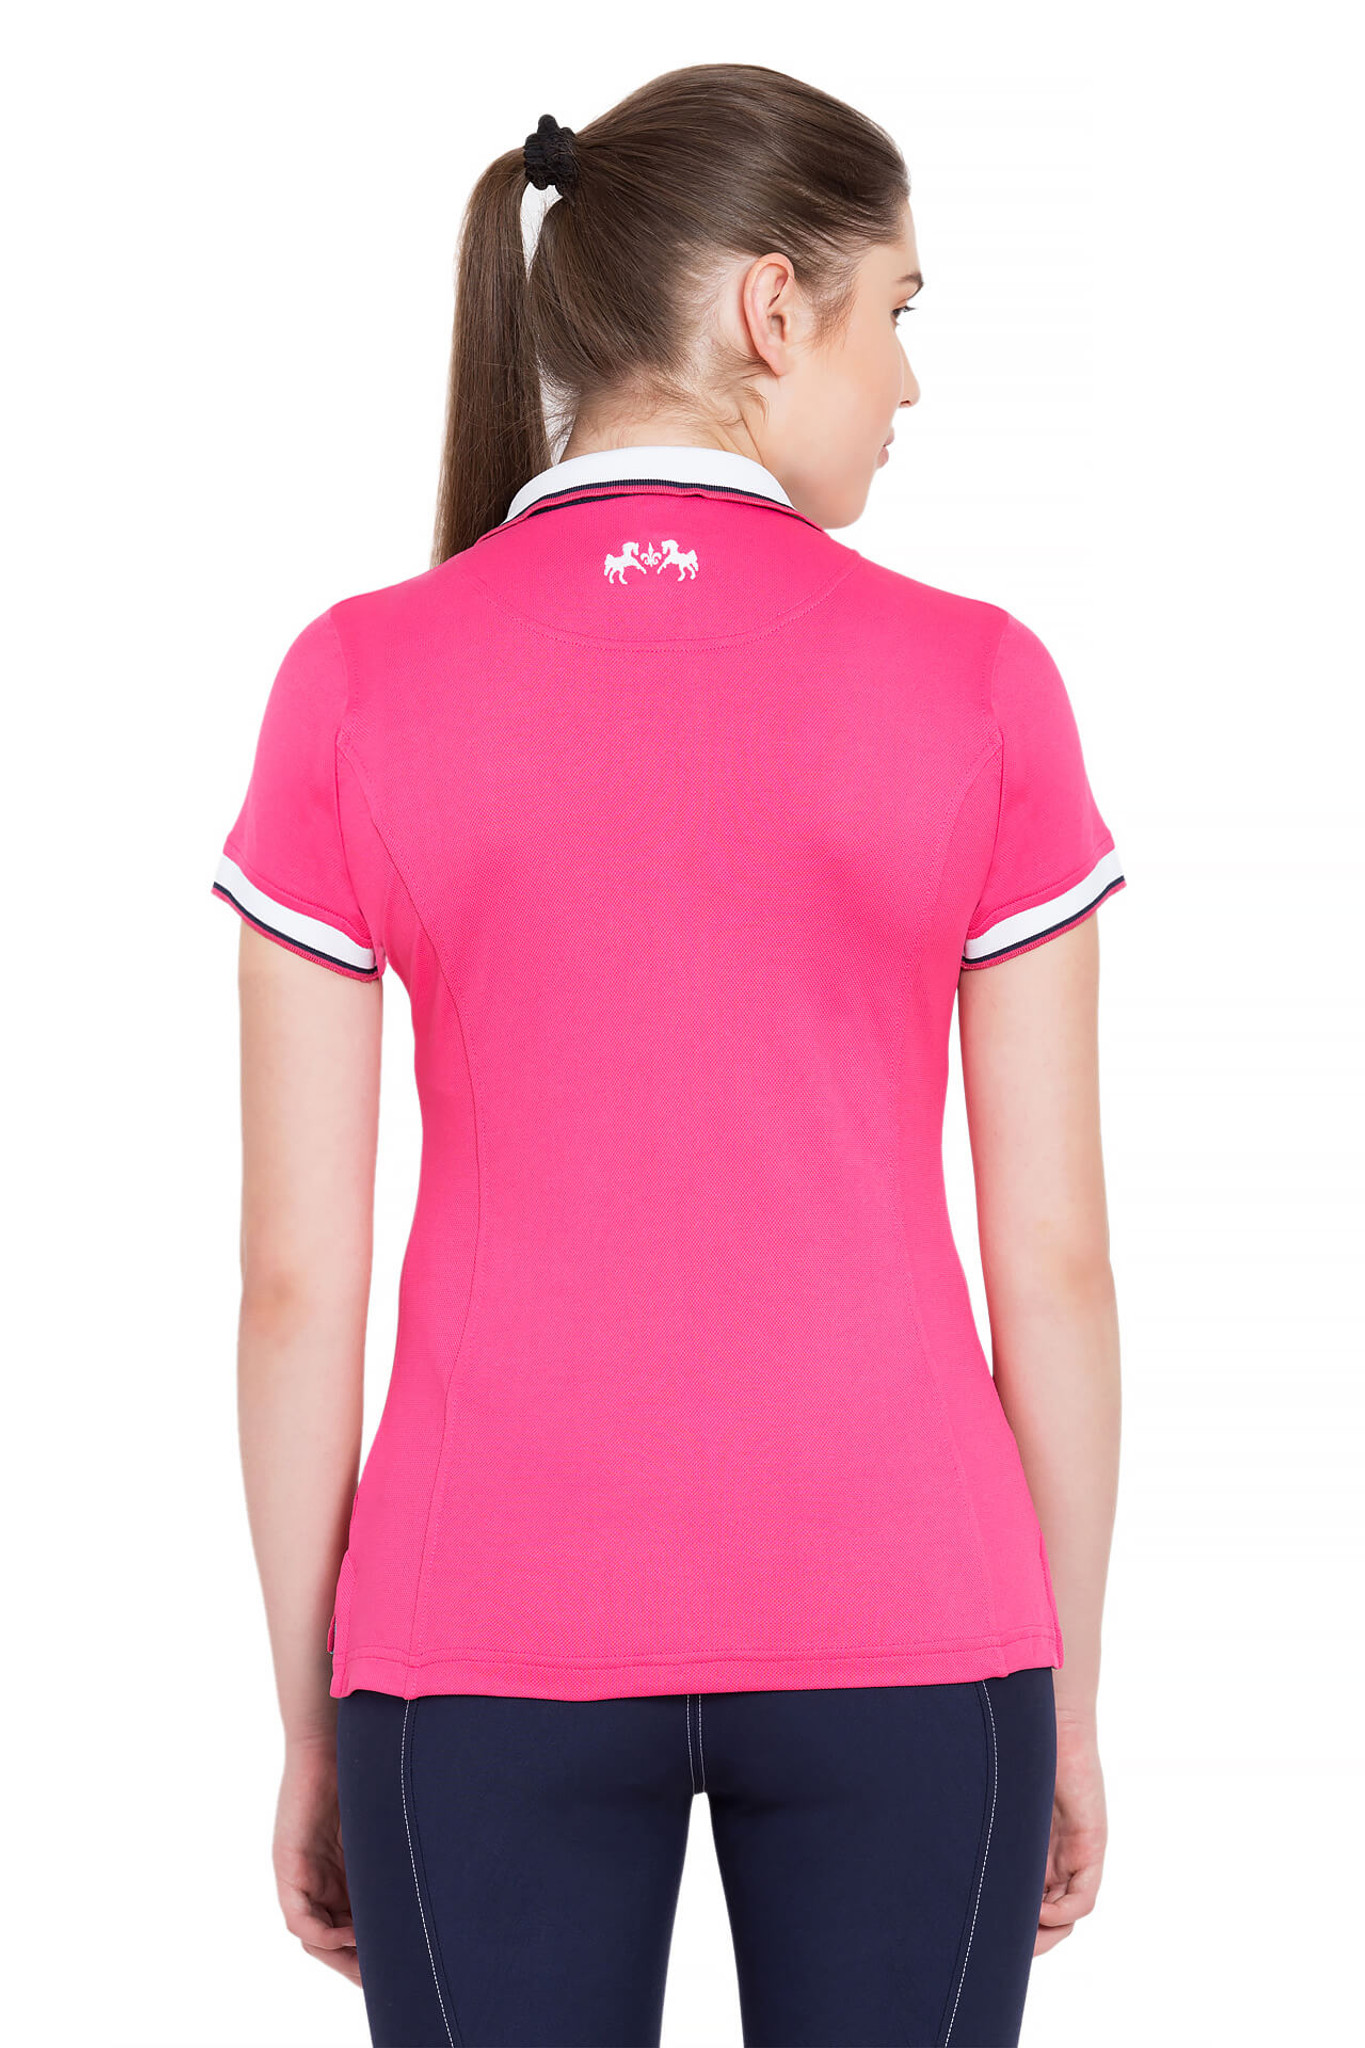 Equine Couture Brinley Short Sleeve Polo Shirt Techincal Micro Polyester Fabric